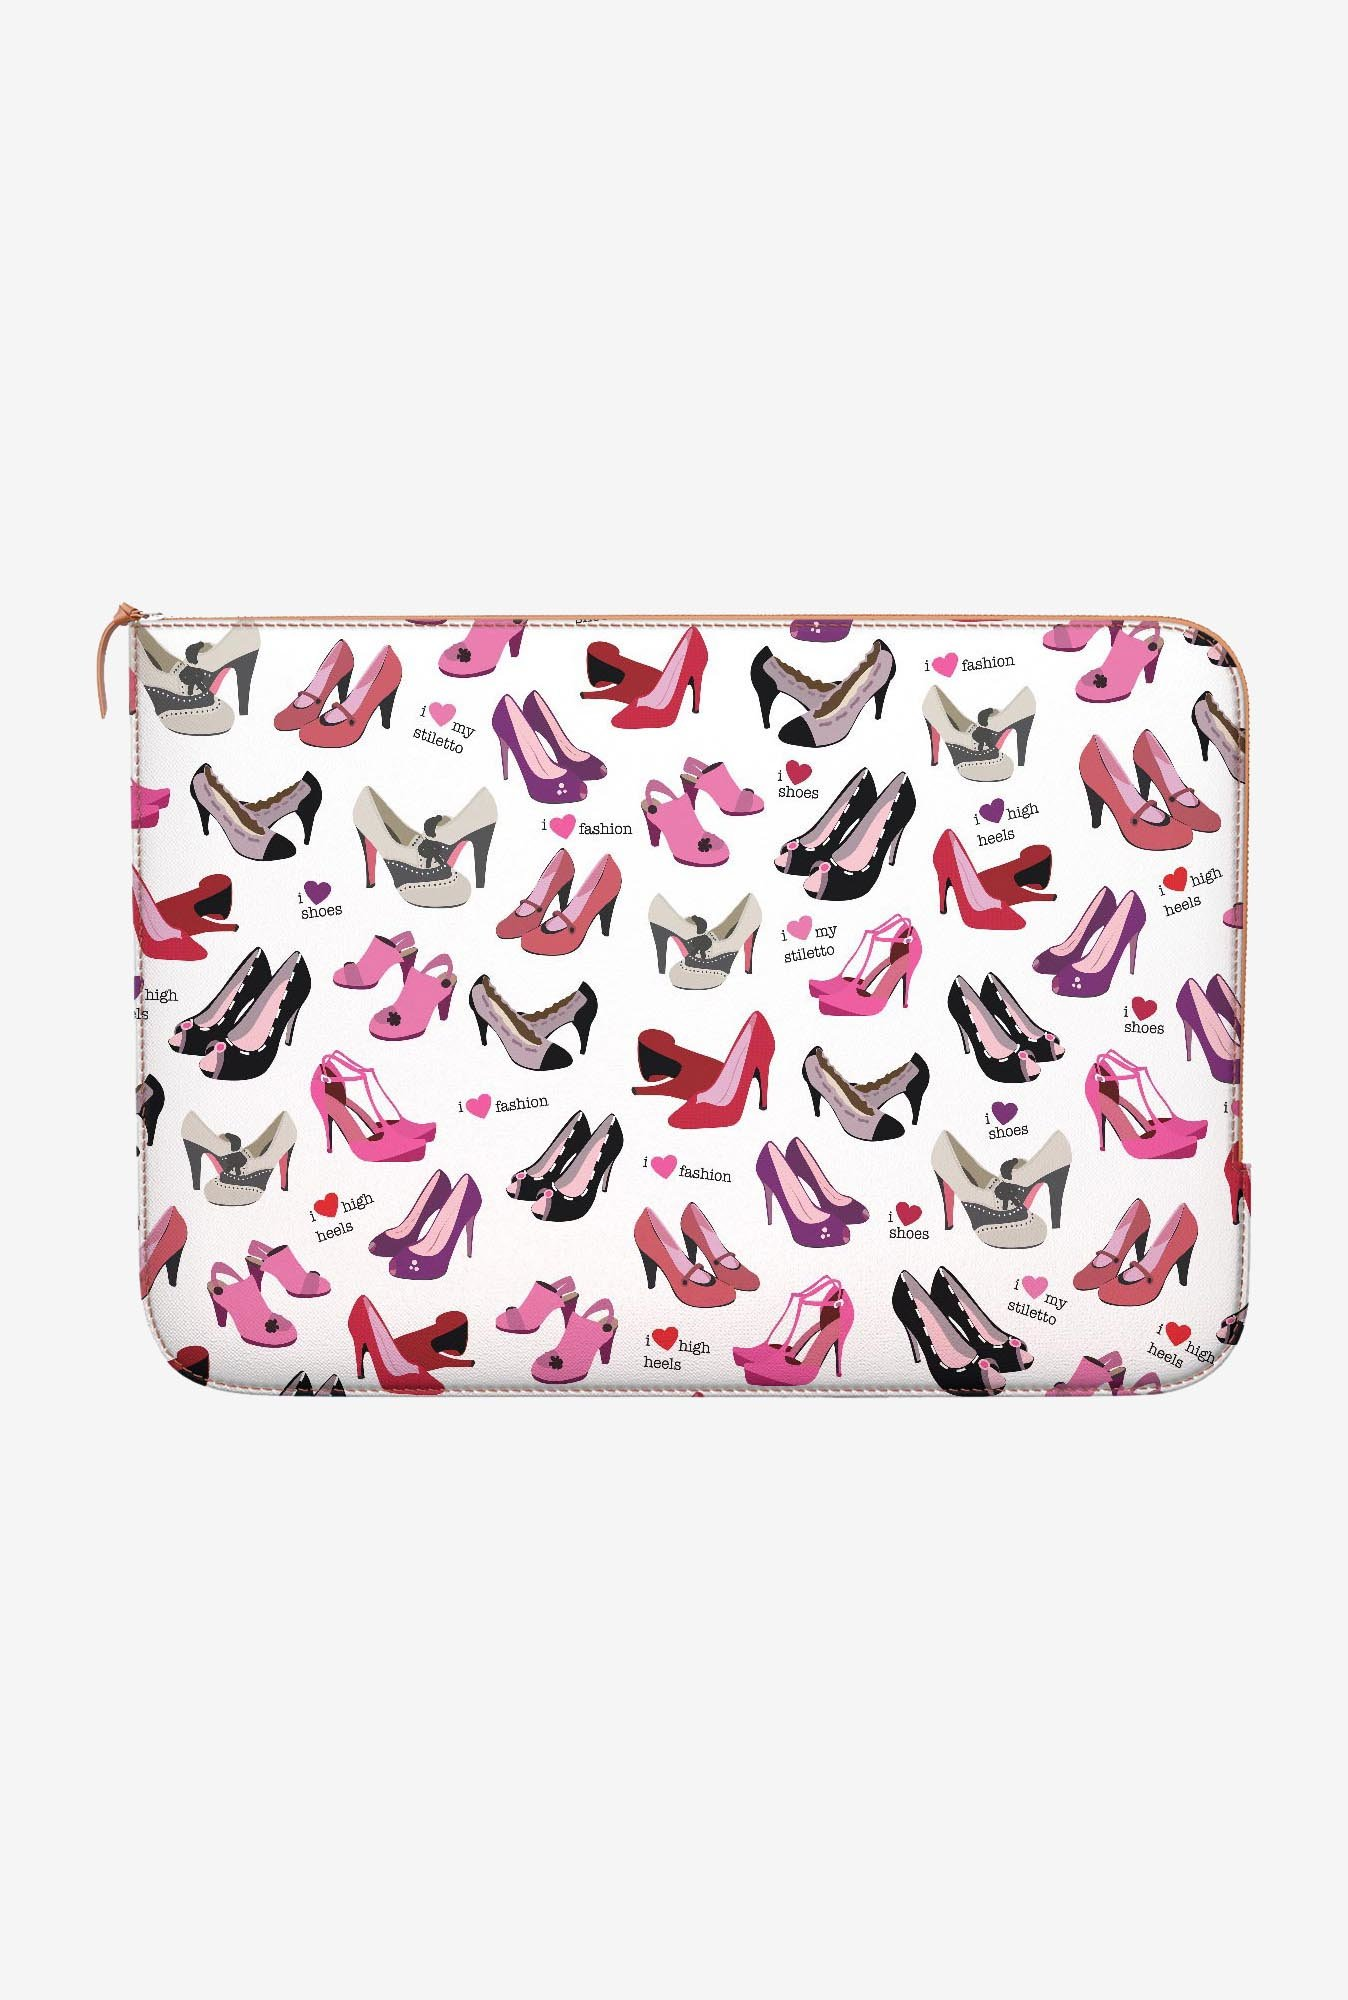 DailyObjects Shoes MacBook Pro 13 Zippered Sleeve